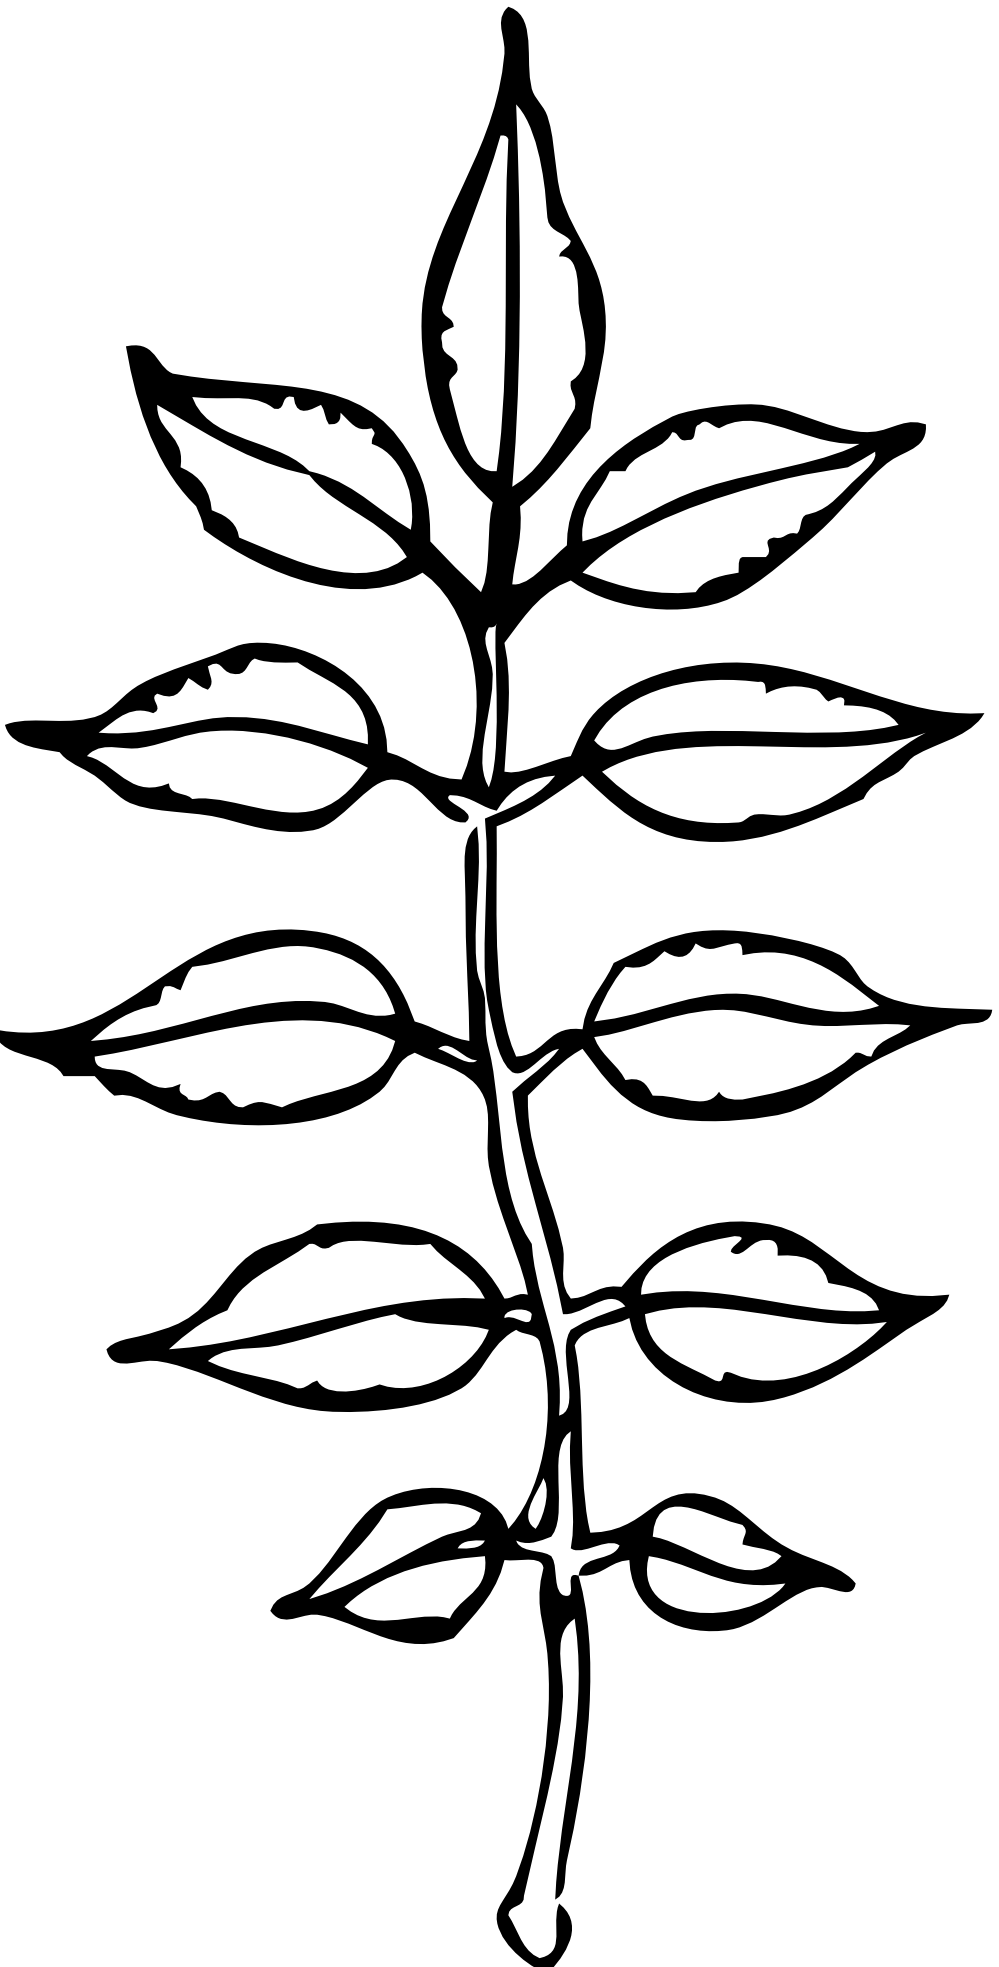 Leaves clipart ash leaf, Leaves ash leaf Transparent FREE.